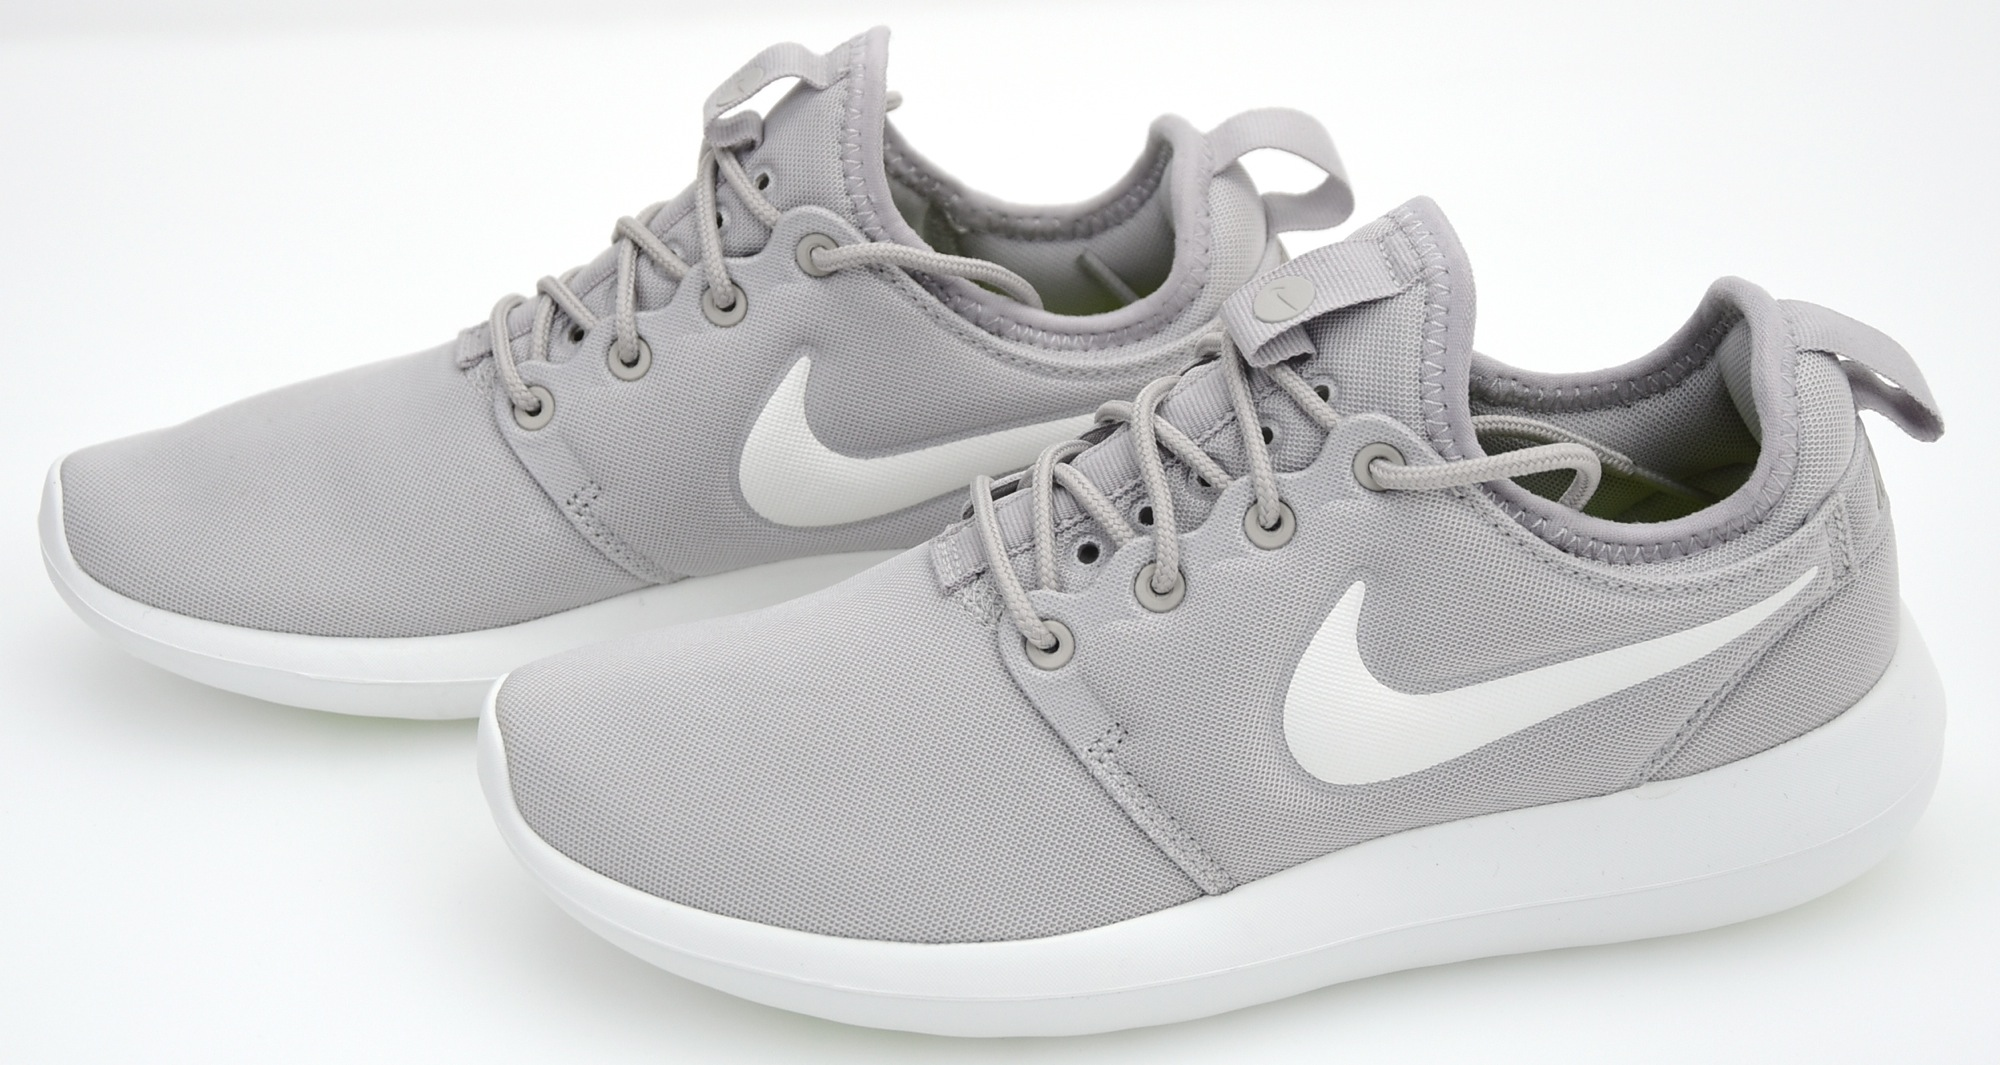 Nike Roshe Two Grey 844931 009 Women' Casual Shoes